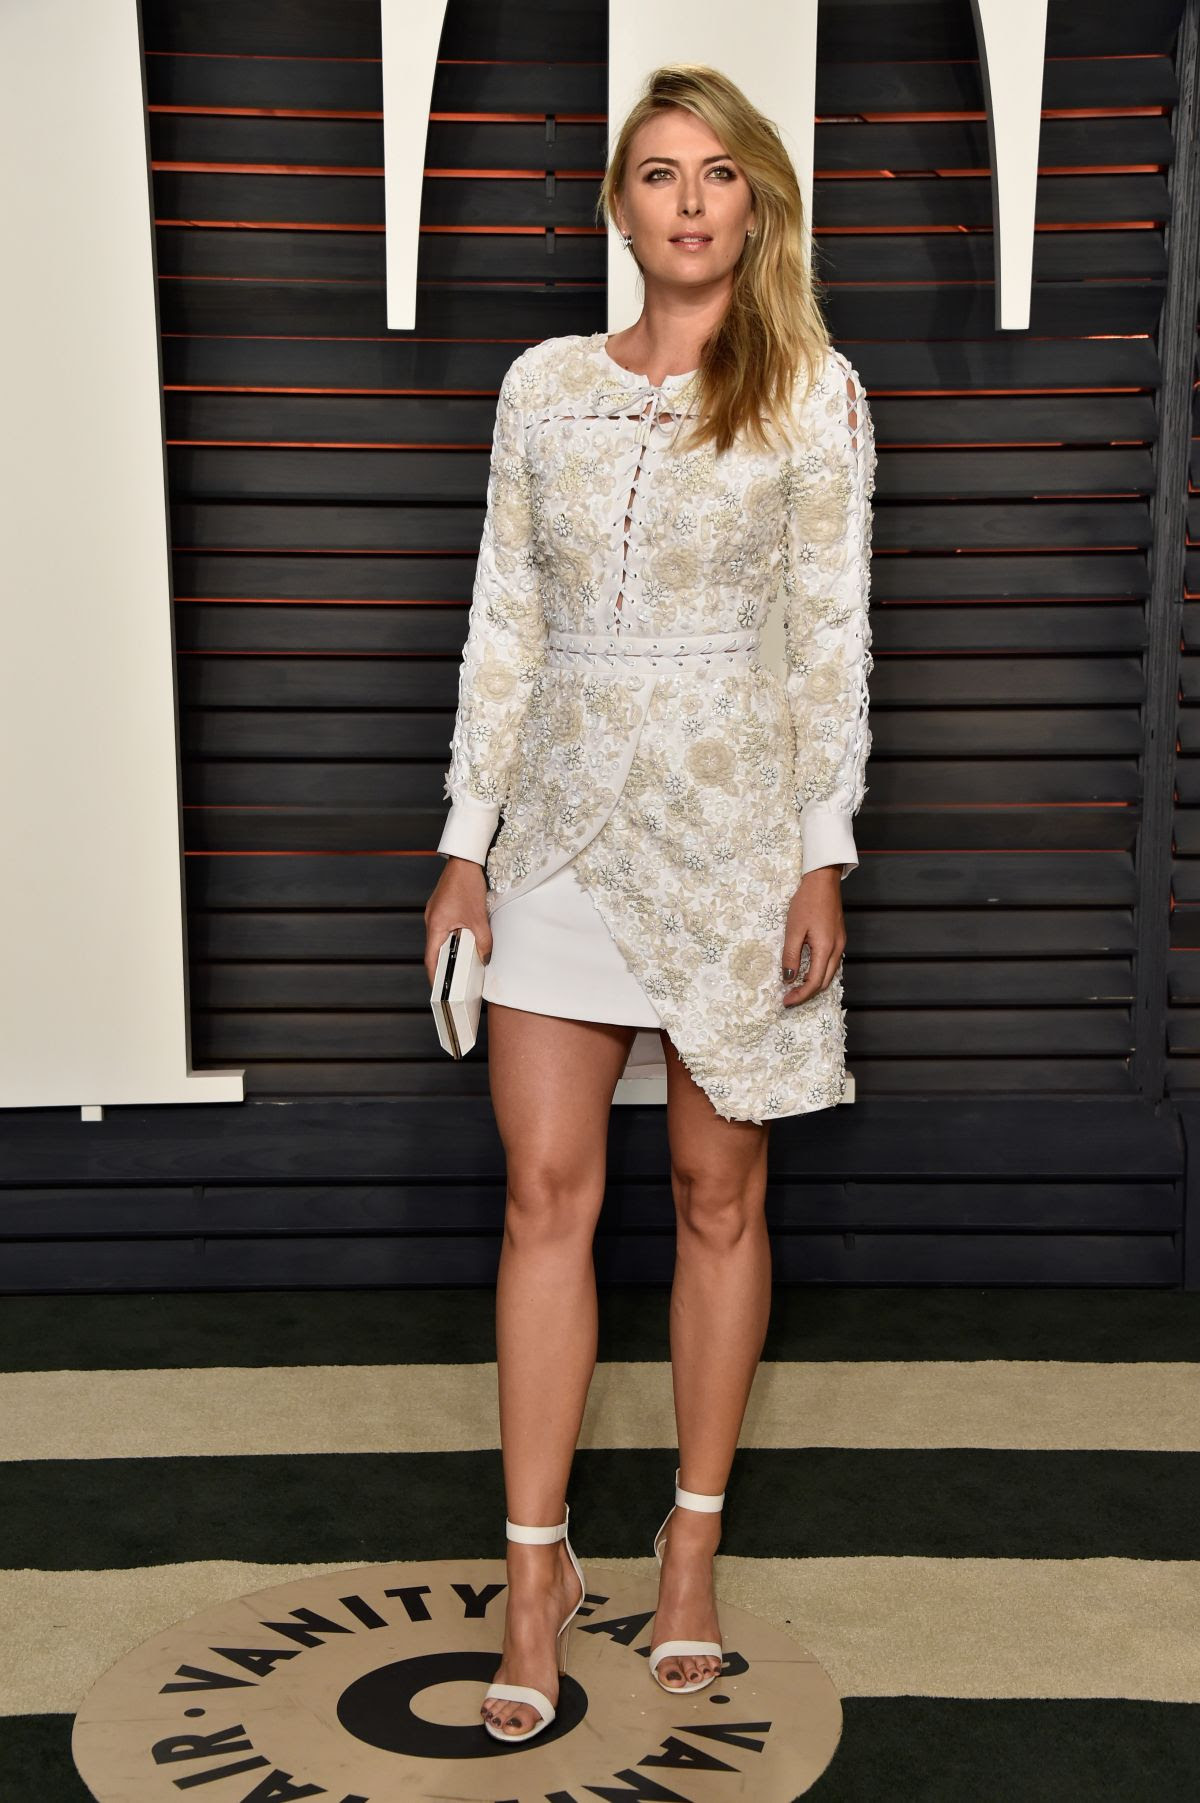 MARIA SHARAPOVA at Vanity Fair Oscar 2016 Party in Beverly Hills 02/28/2016